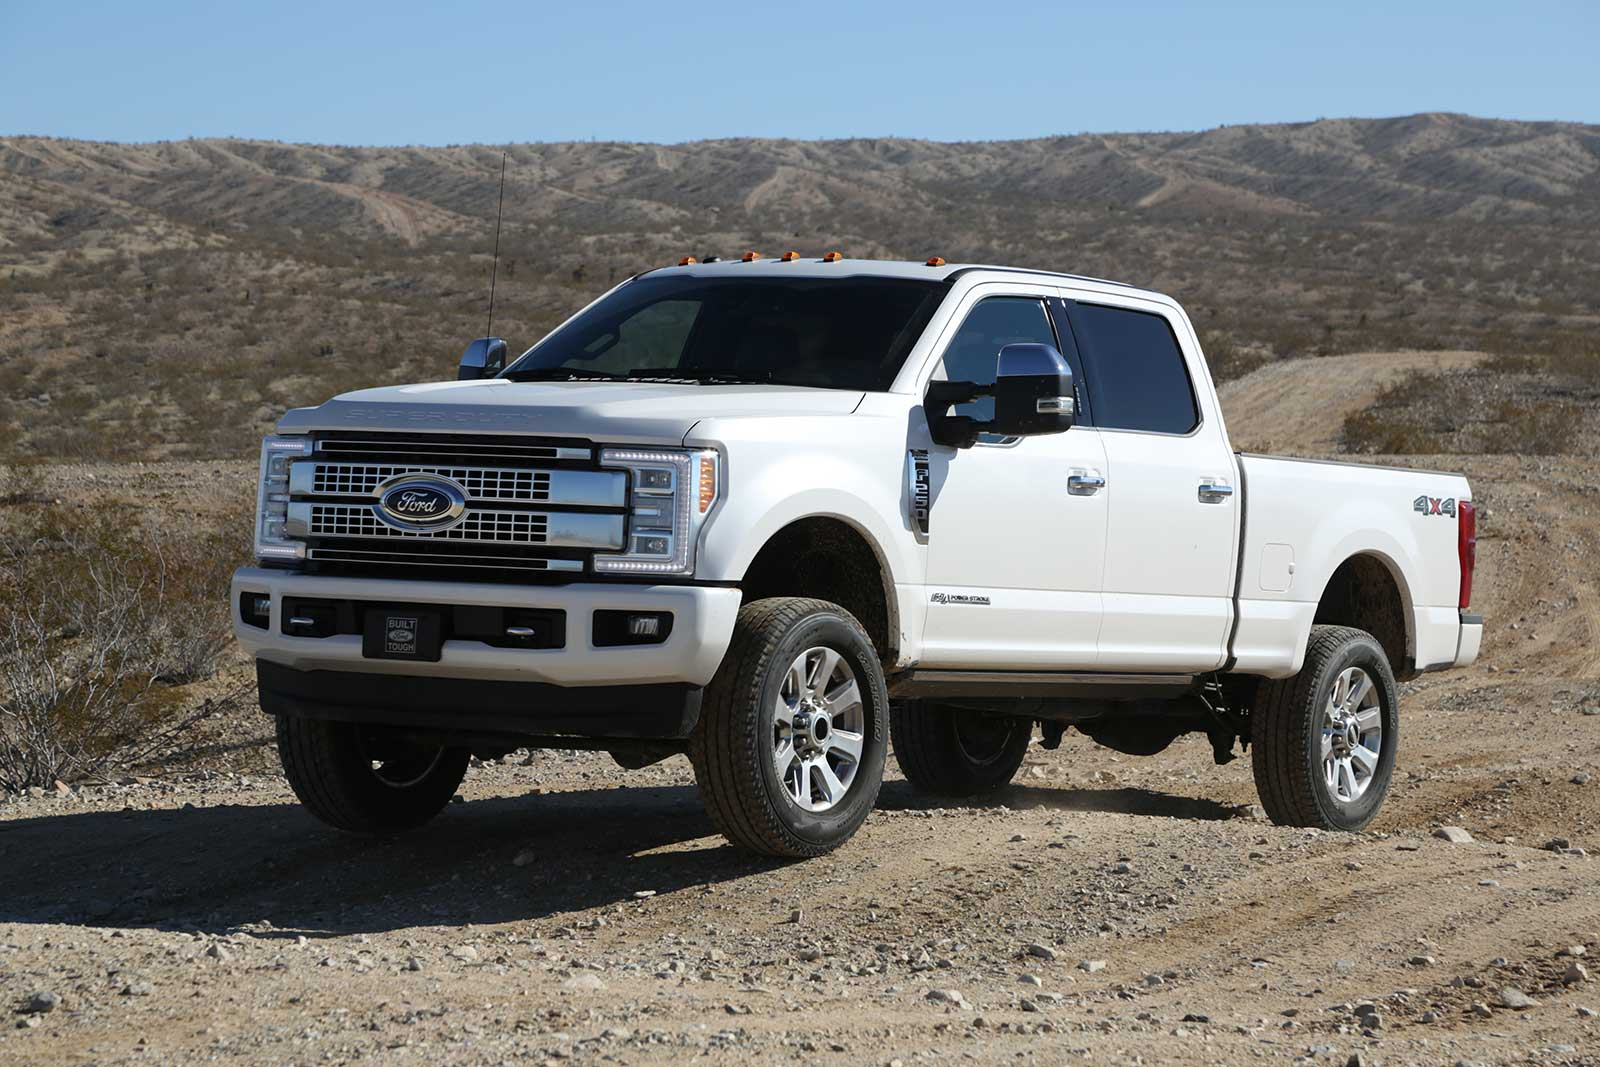 2017 ford f 250 super duty autoguide com truck of the year contender